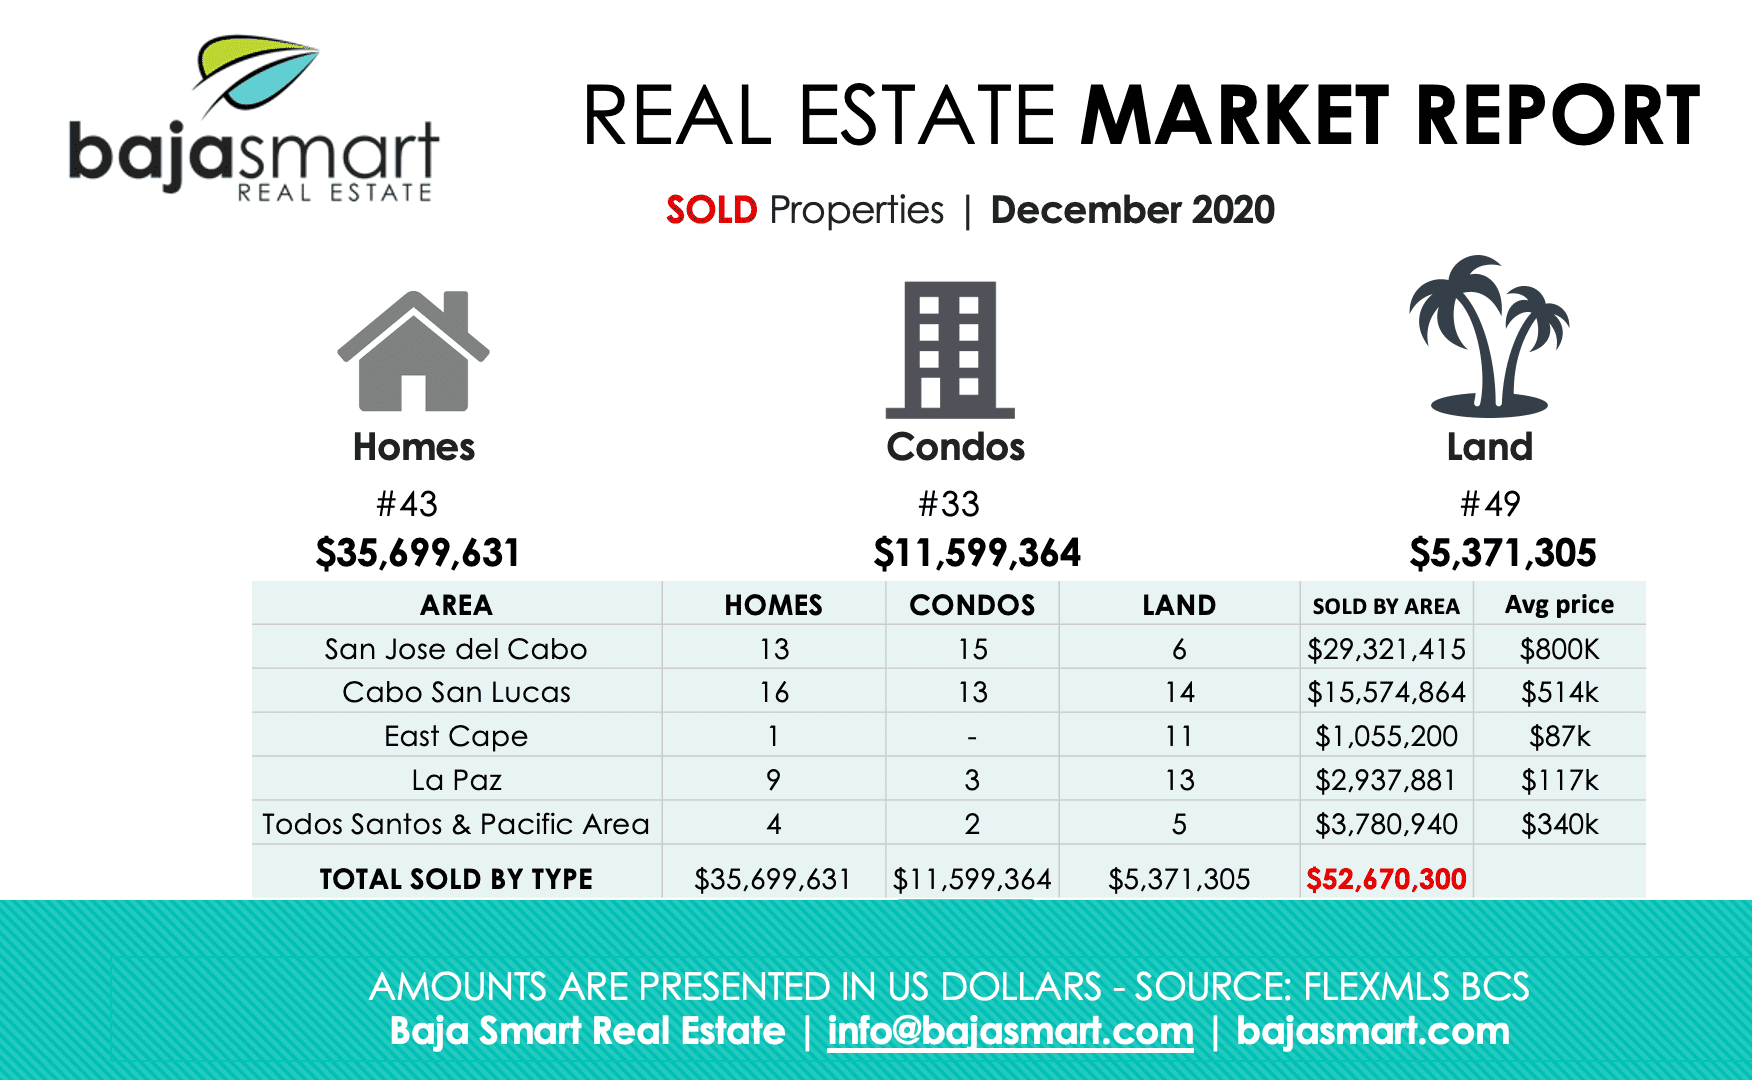 cabo sold properties 2020